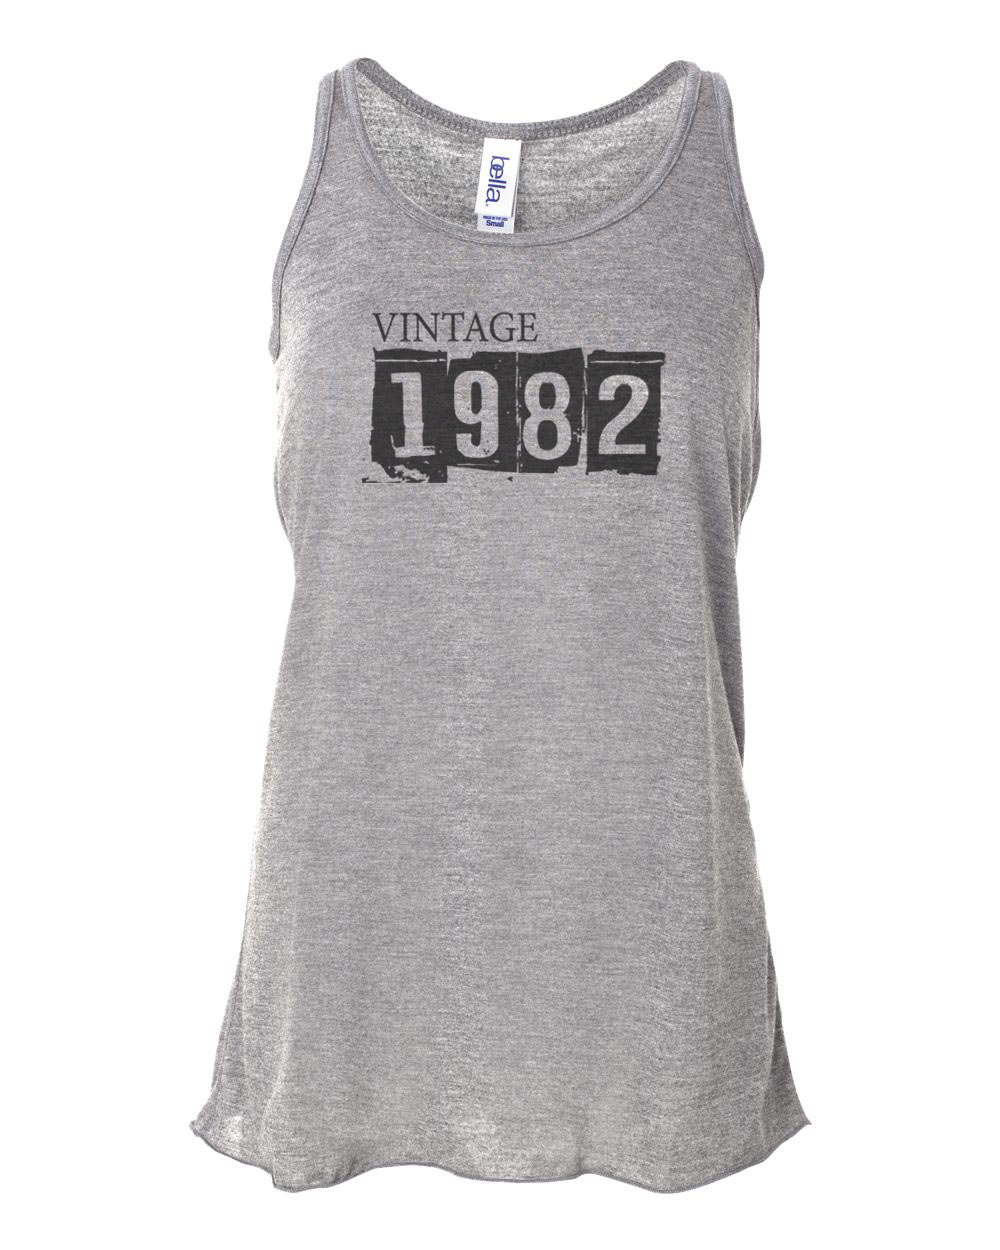 Men/'s High Quality Sublimated  Sport Top Racer Back Sports Gym Wear Tank Tops